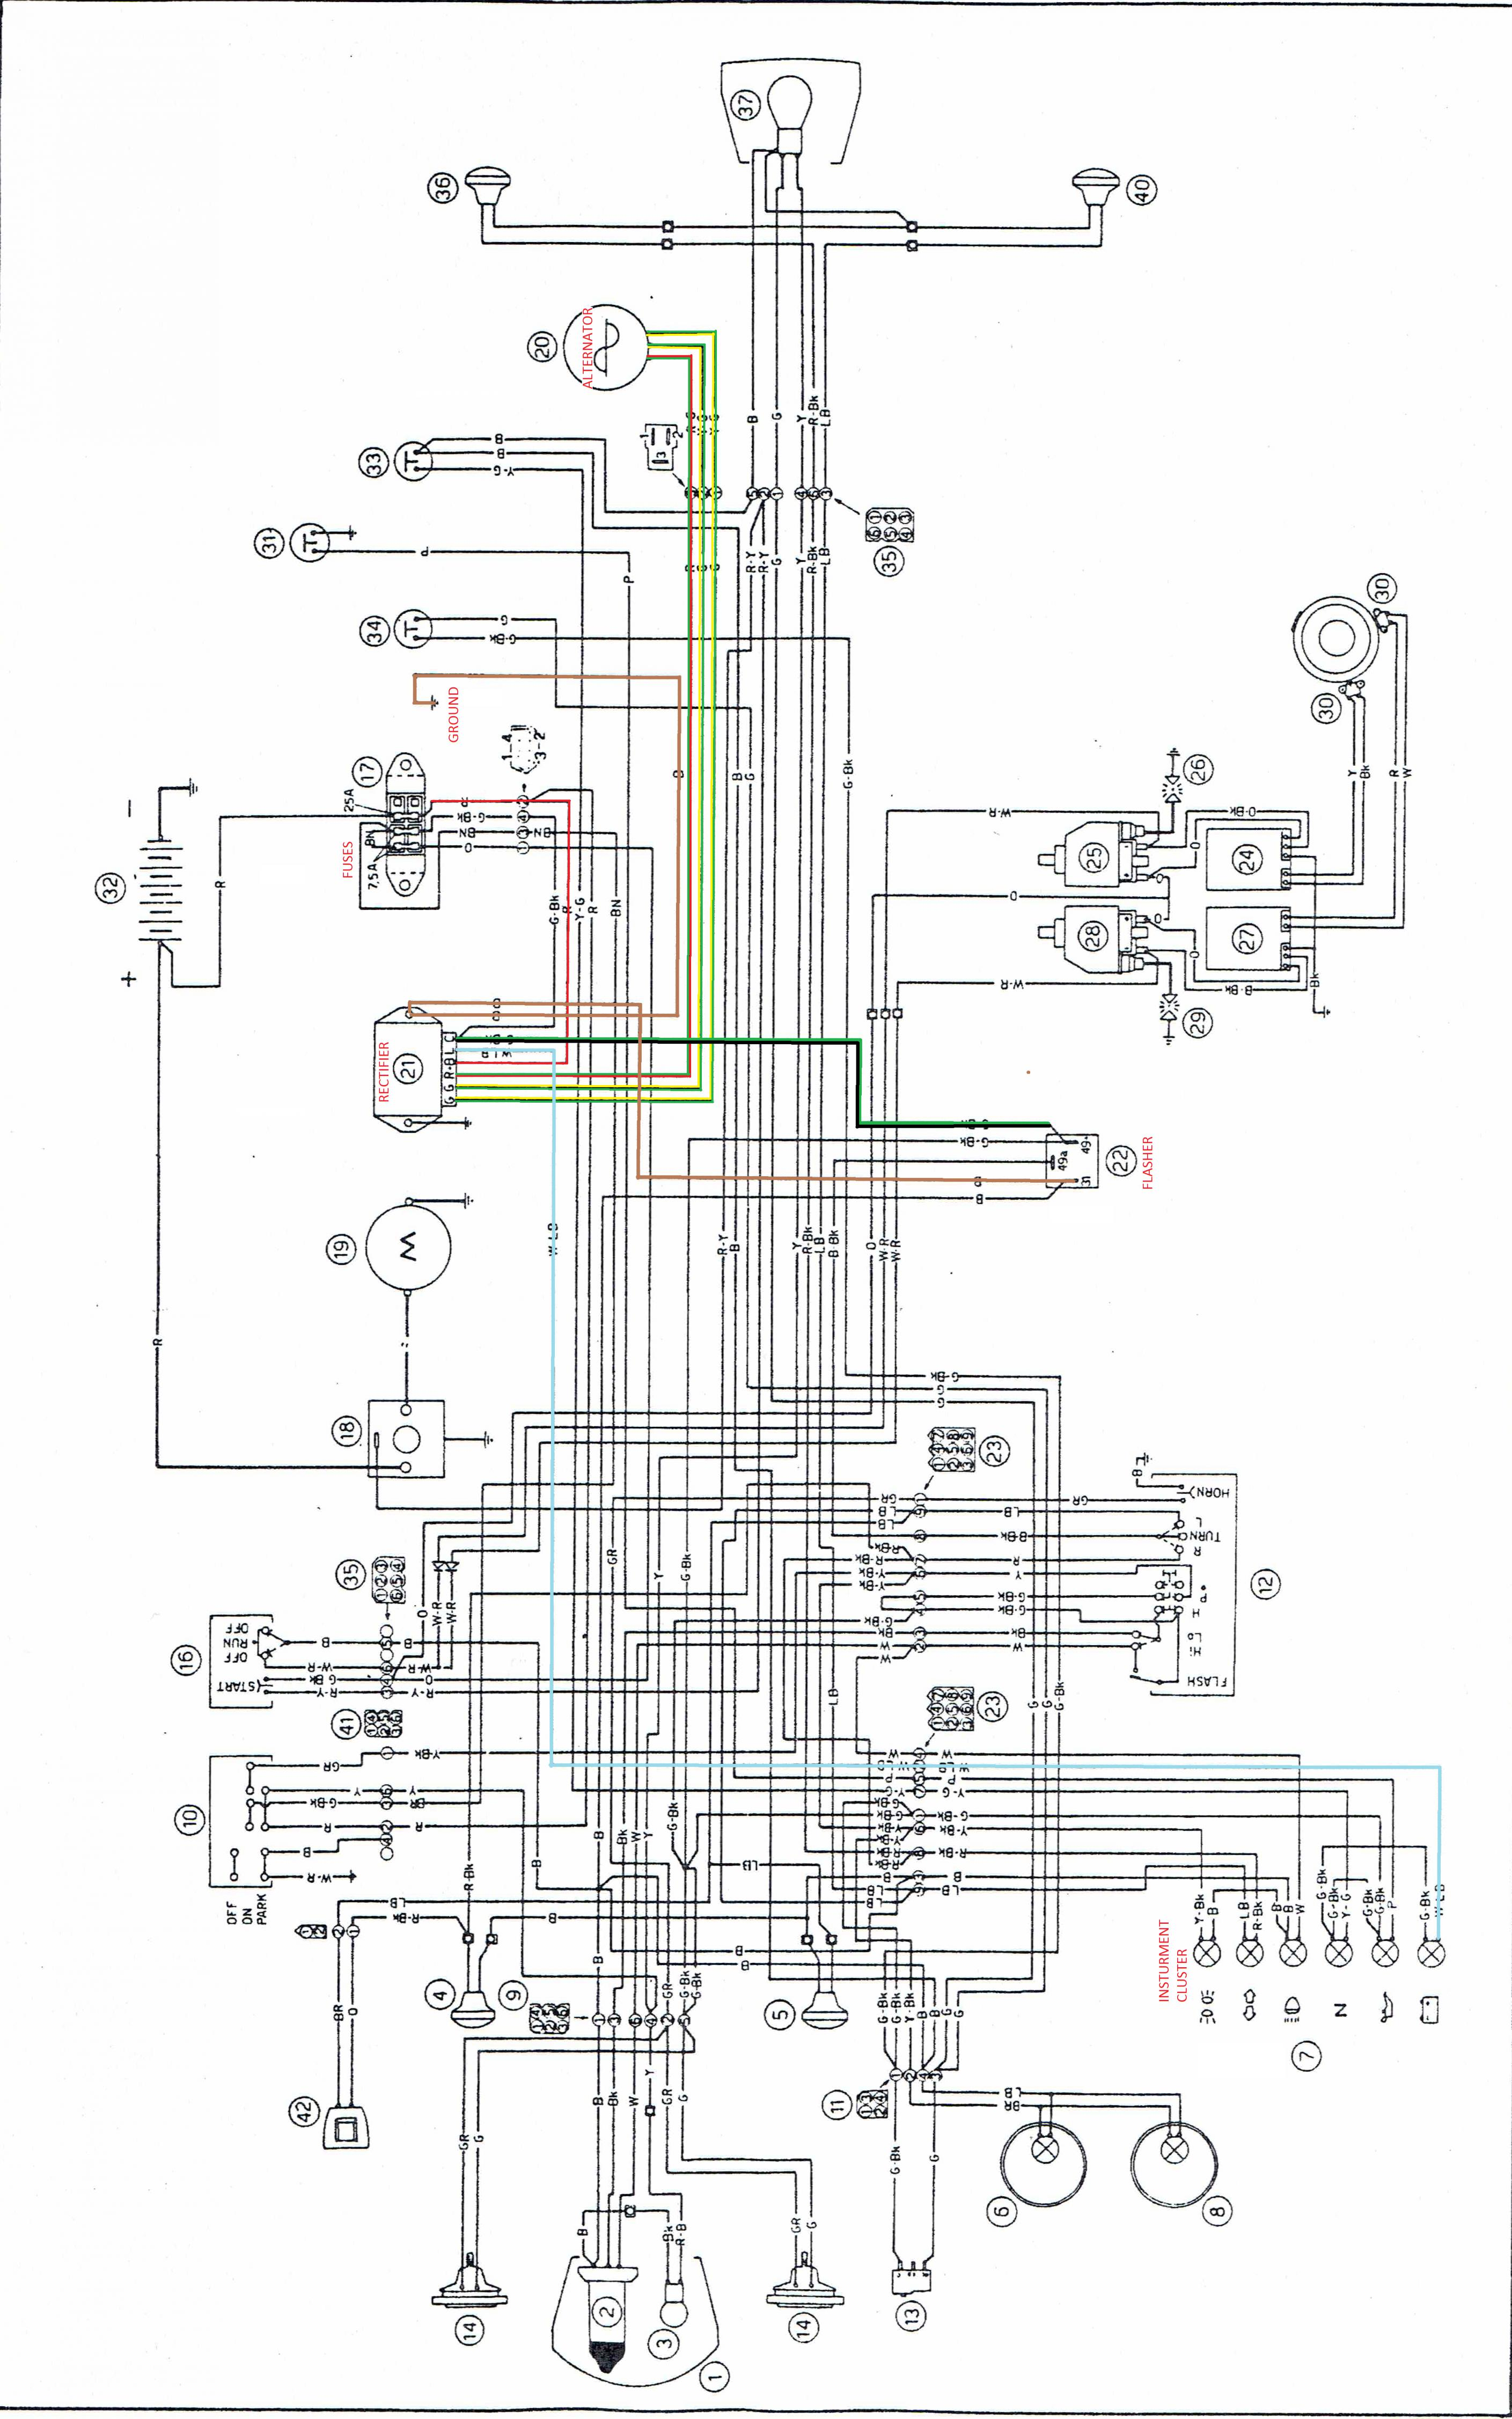 7 pin 11 pole stator gy6 wiring schematic